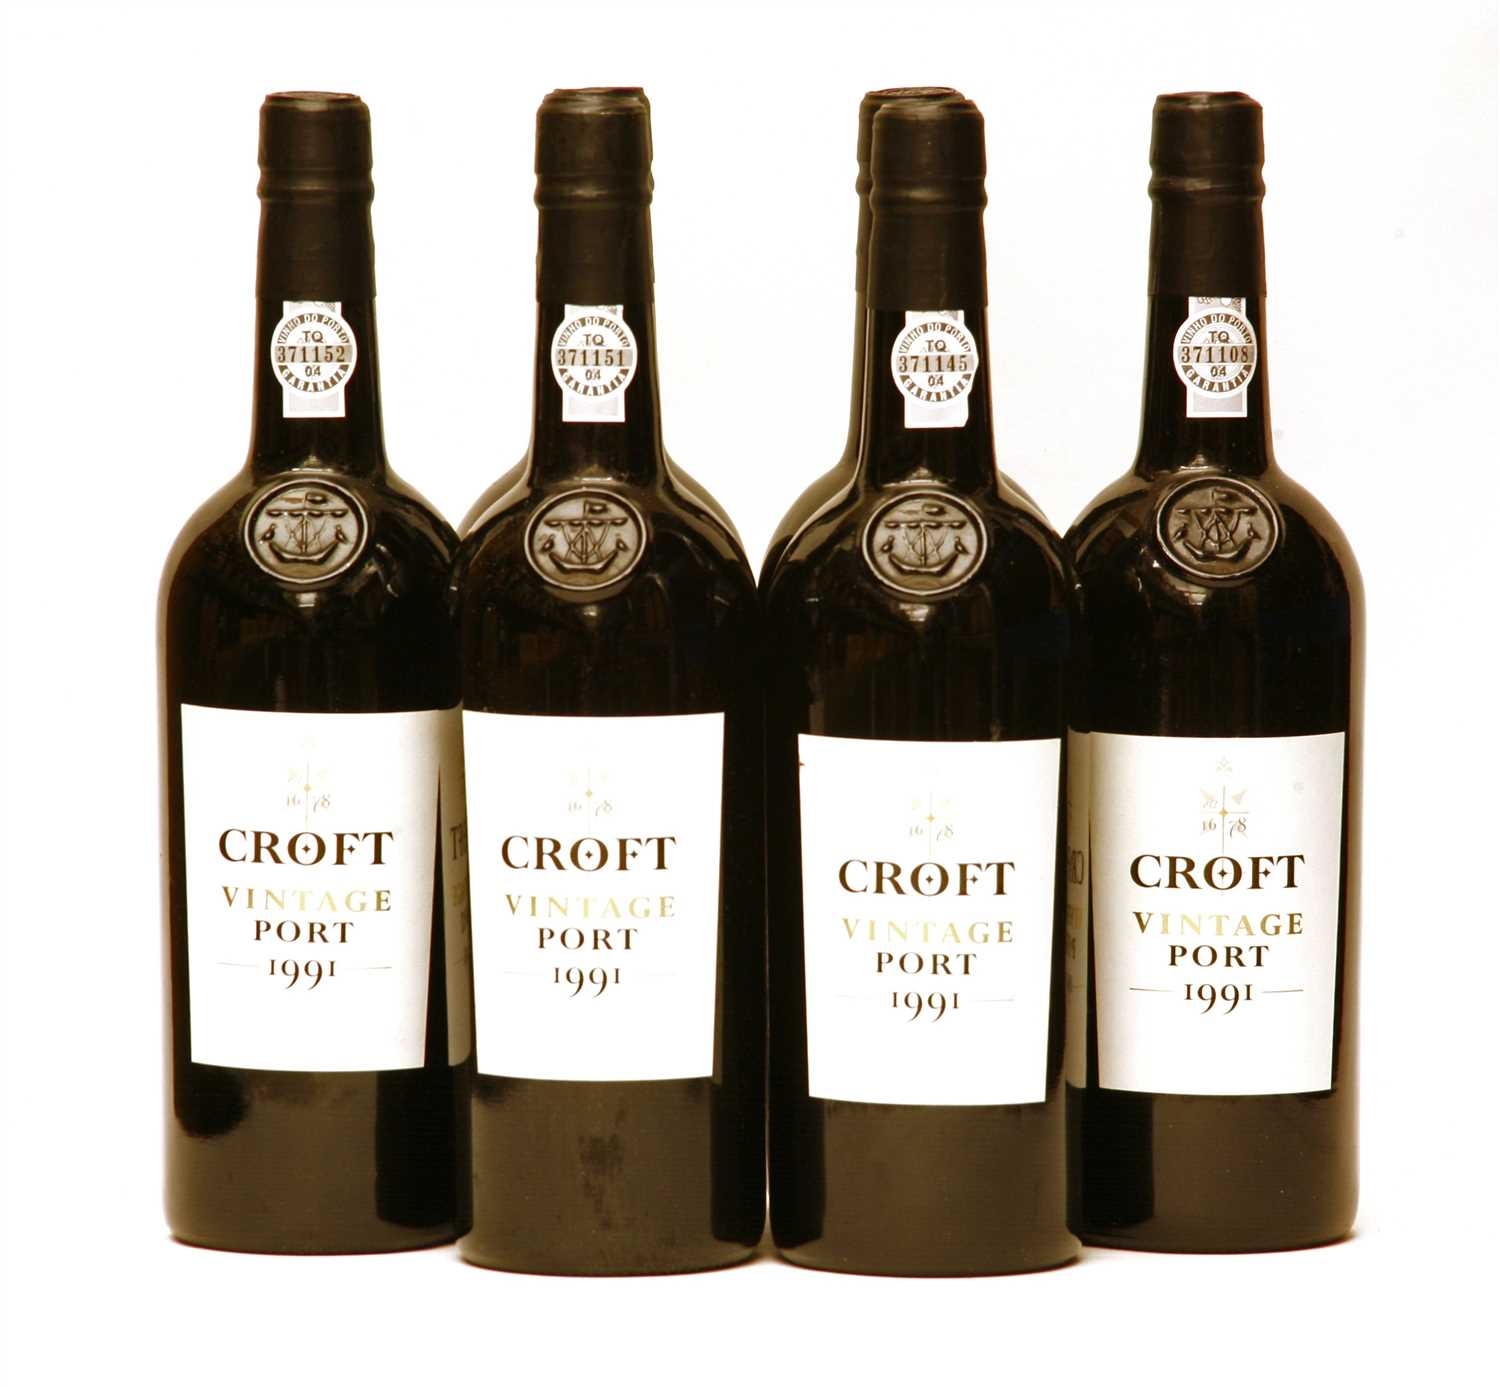 Lot 36 - Croft, 1991, six bottles (opened owc)